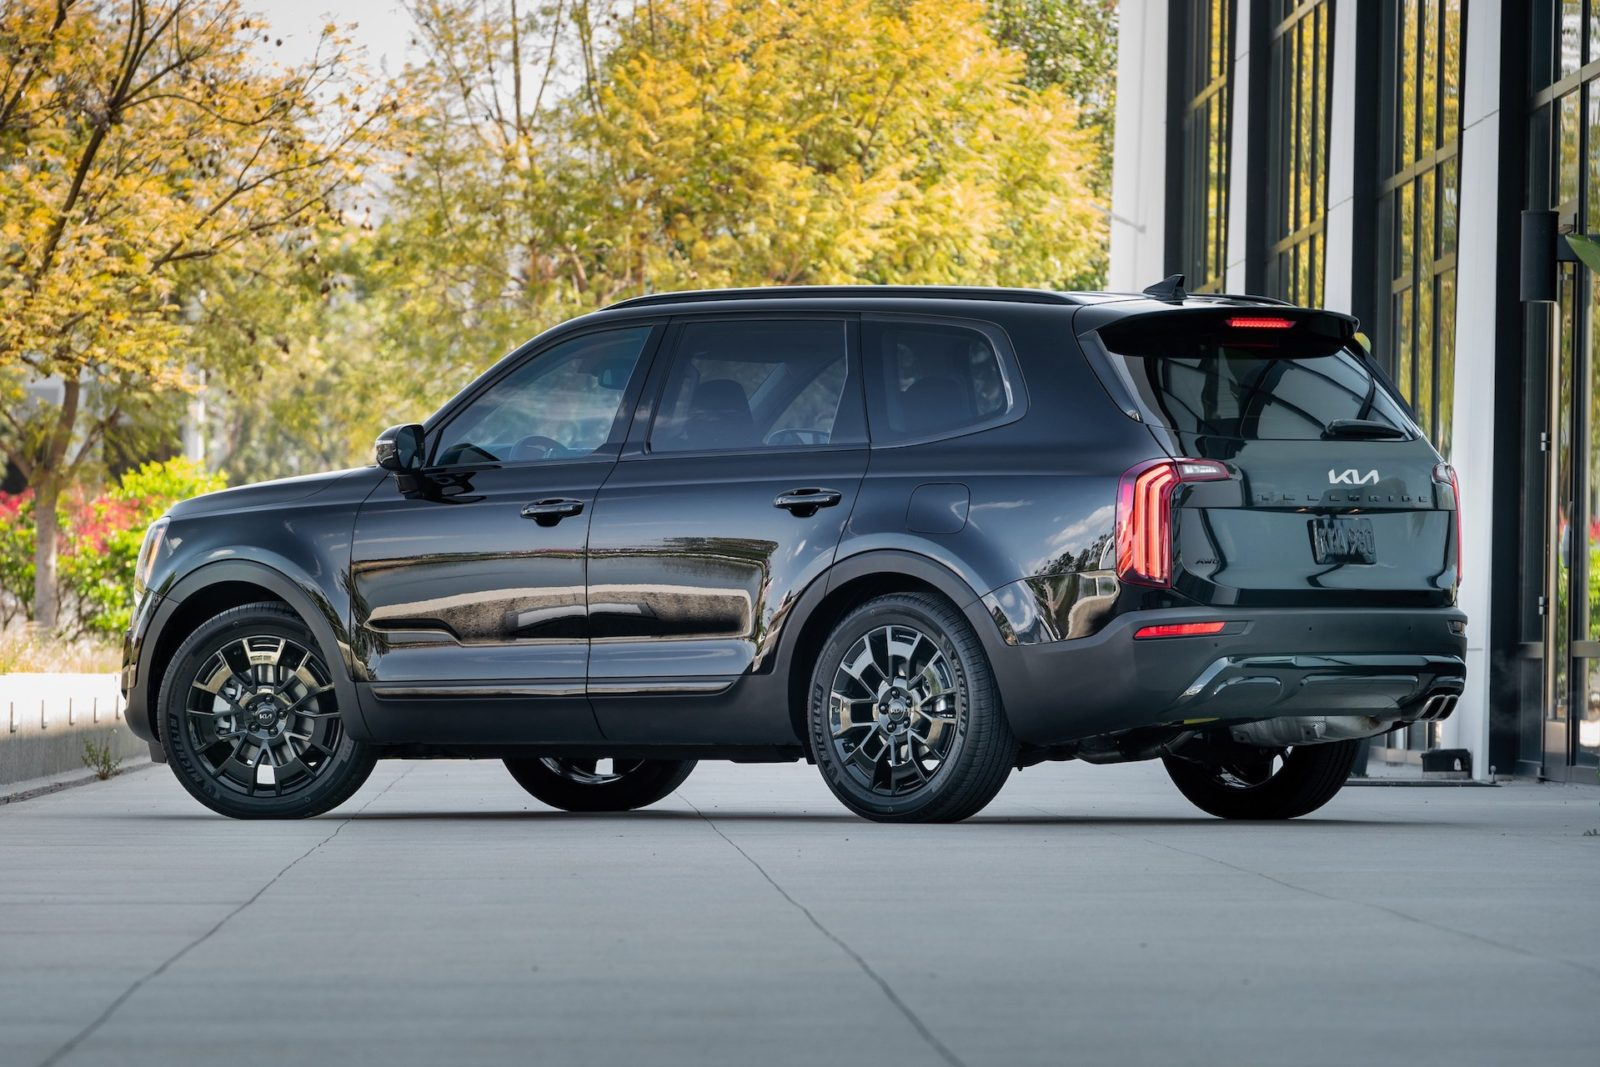 telluride-vs.-explorer,-$3m-koenigsegg-sells-out,-jeep-plans-ev-lineup:-what's-new-@-the-car-connection